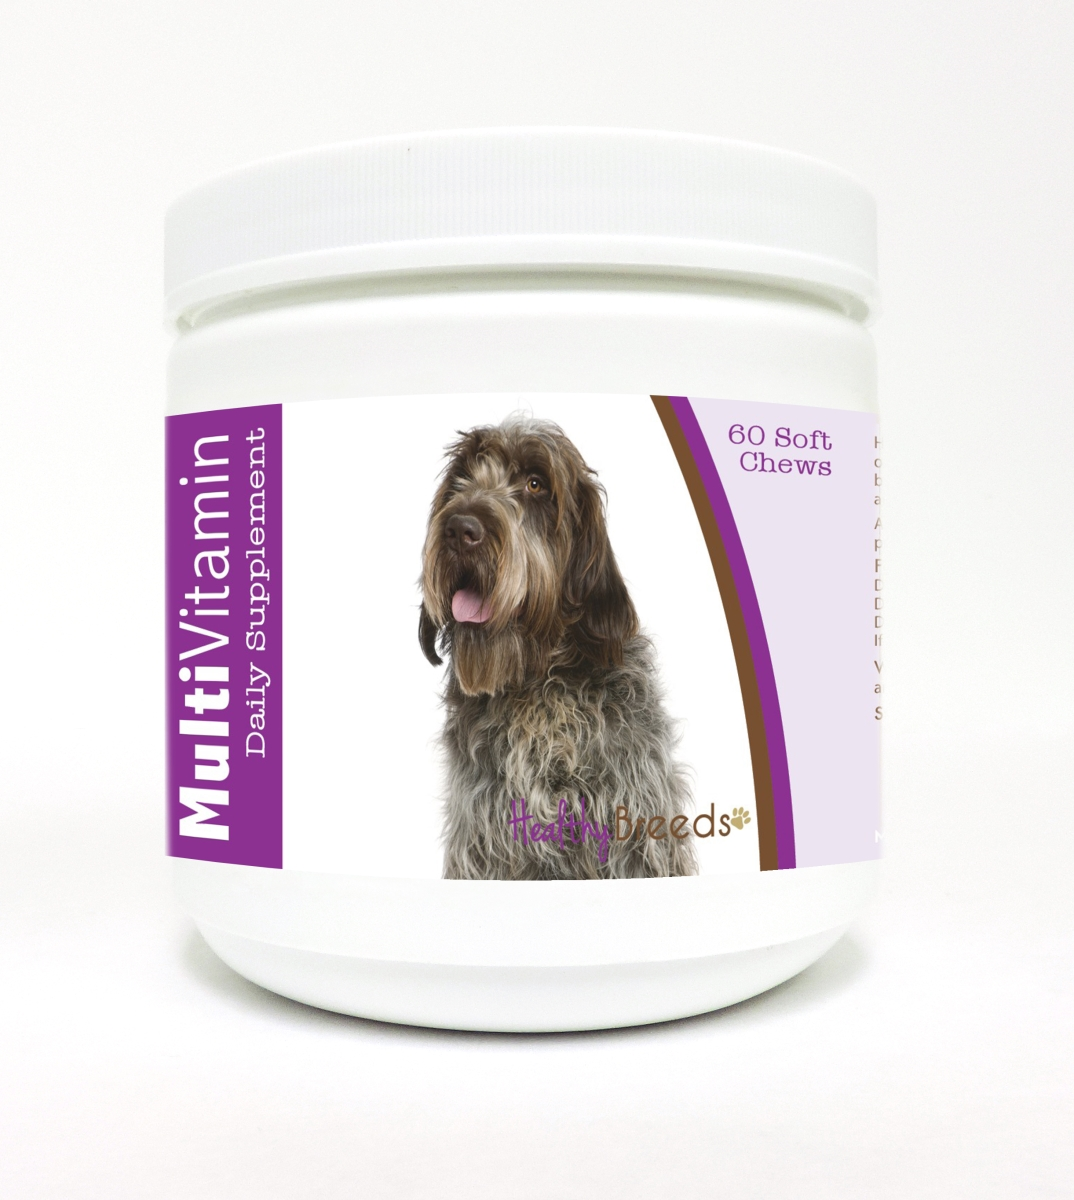 Healthy Breeds 840235116301 Wirehaired Pointing Griffon Multi-Vitamin Soft Chews - 60 Count